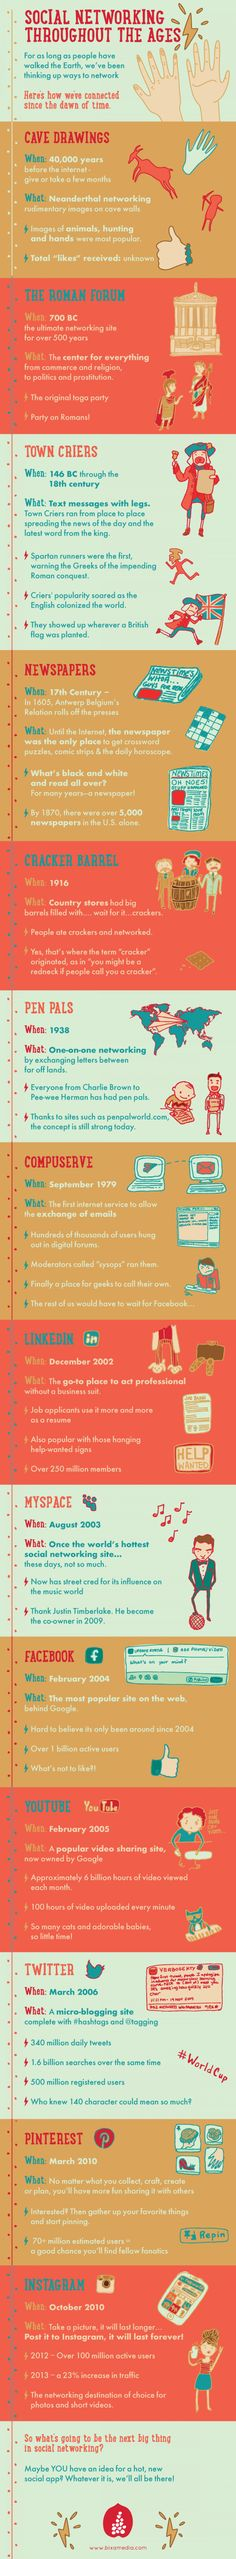 Social Media Throughout The Ages - From the cavemen, to town criers and pen pals, social networking has changed how people connect with one another. Take a look at our infographic and discover how we have connected throughout the ages.